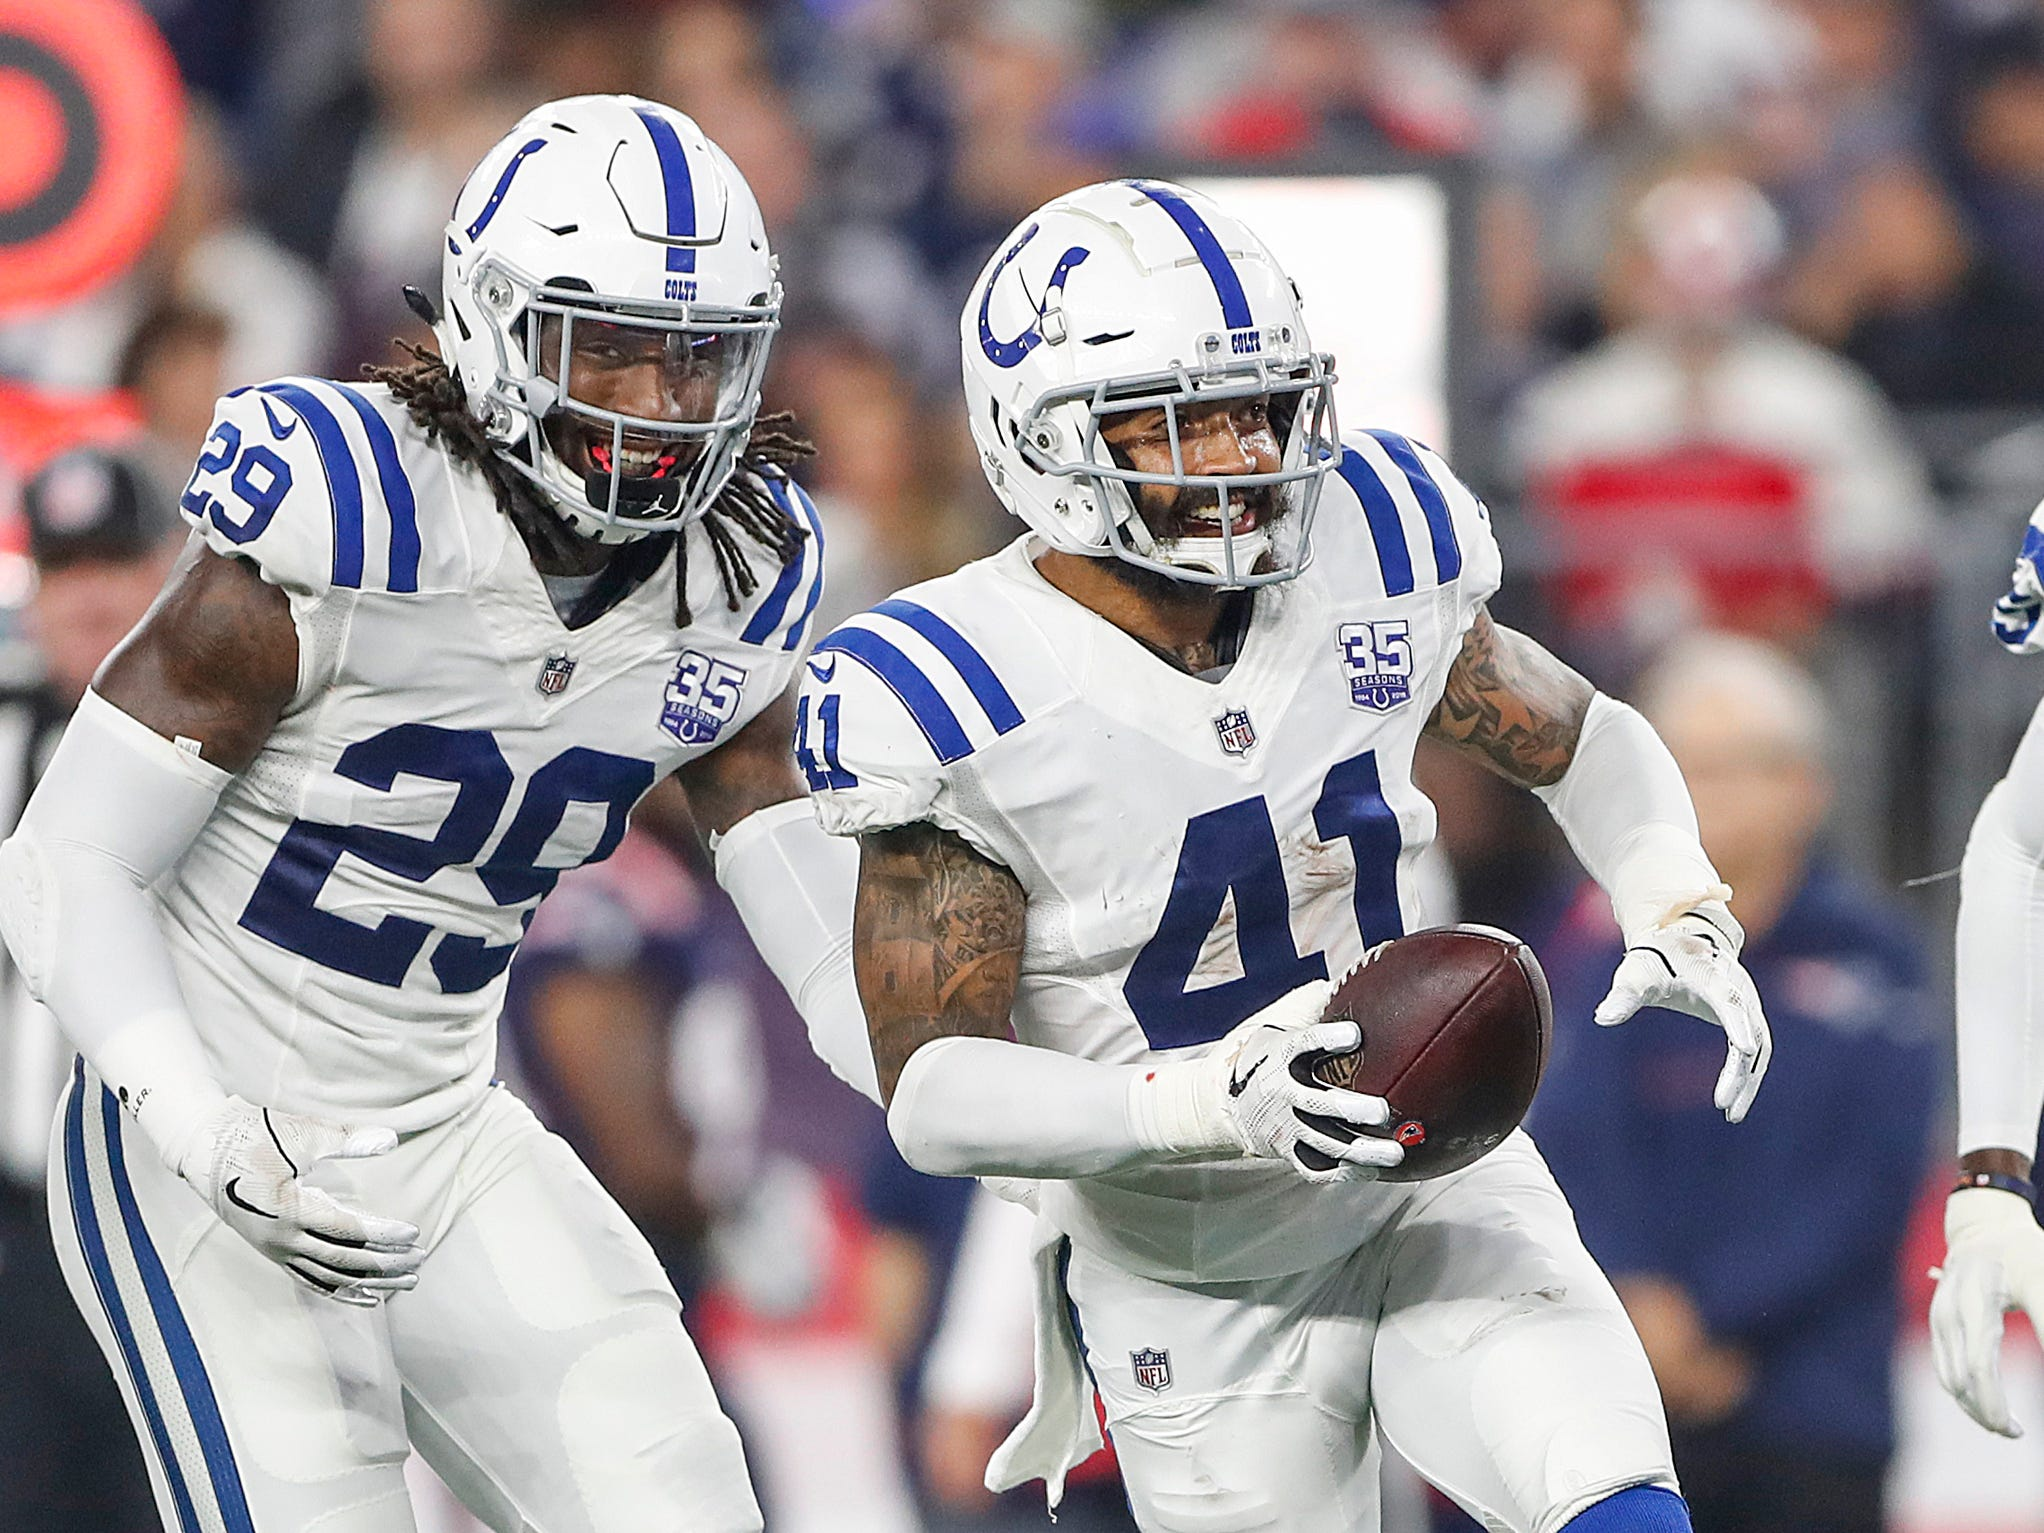 Marcus Johnson, Matthias Farley, Chester Rogers sign tenders with Colts